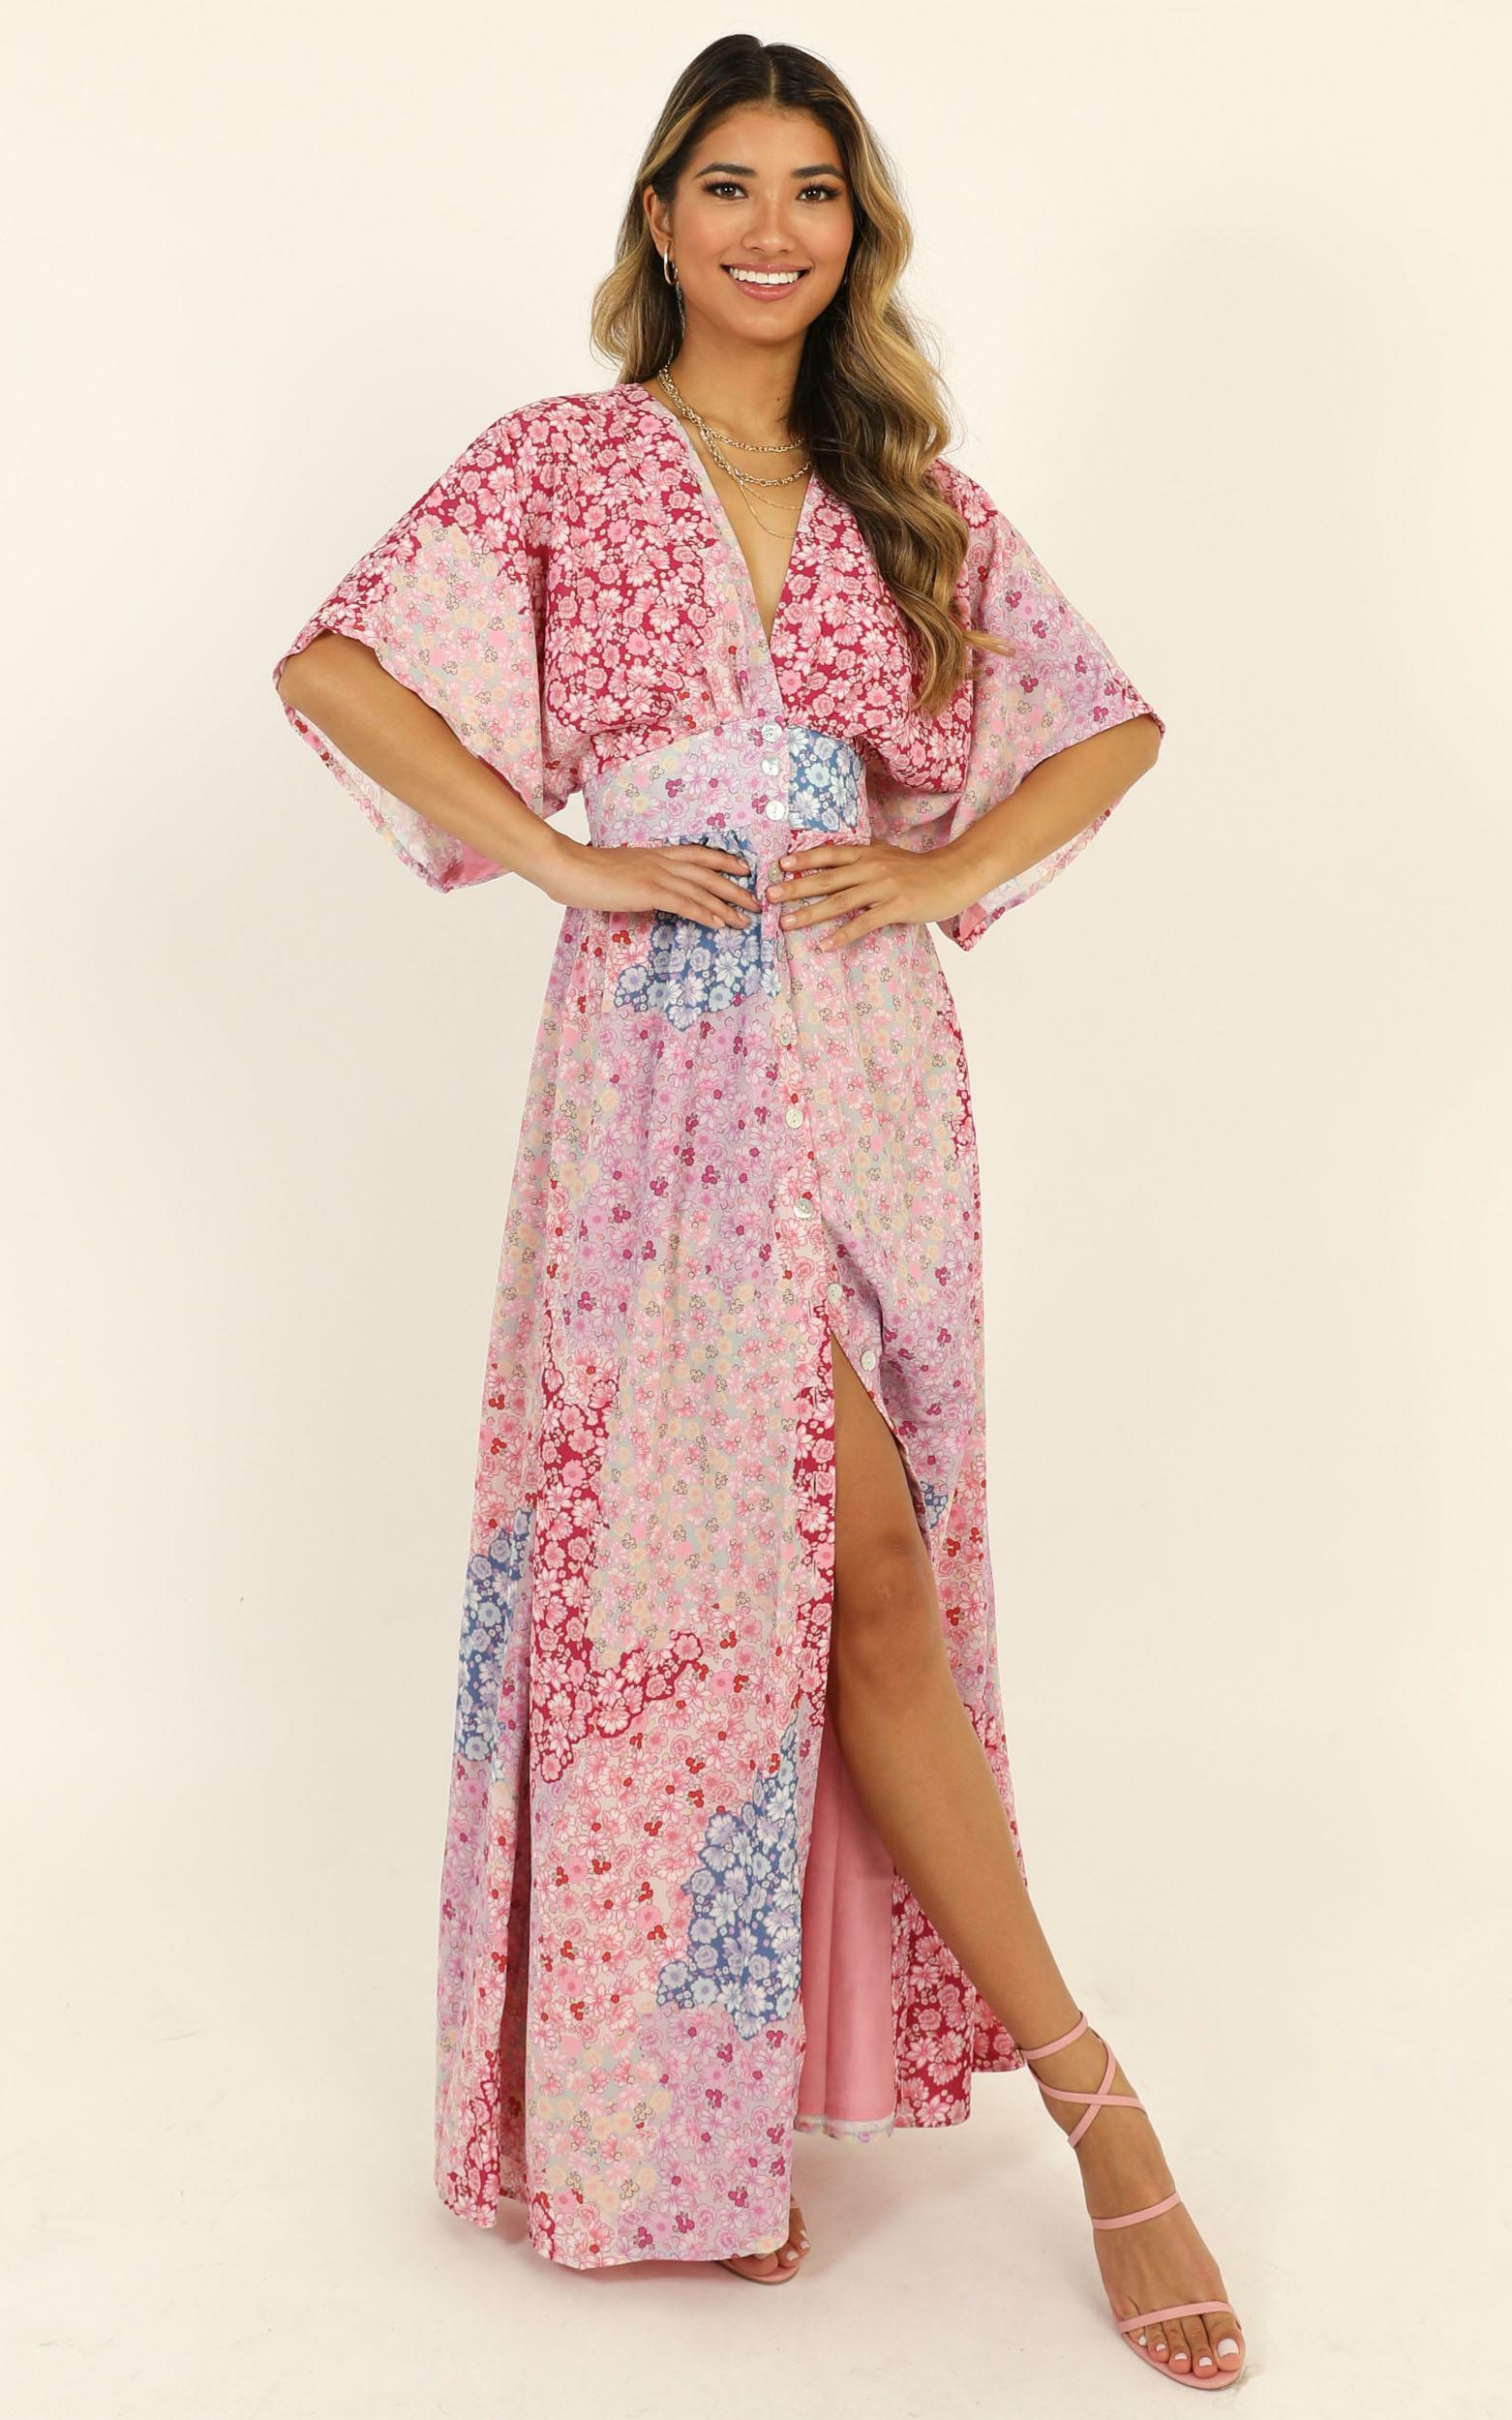 Sitting Pretty Dress in pink floral - 20 (XXXXL), Pink, hi-res image number null